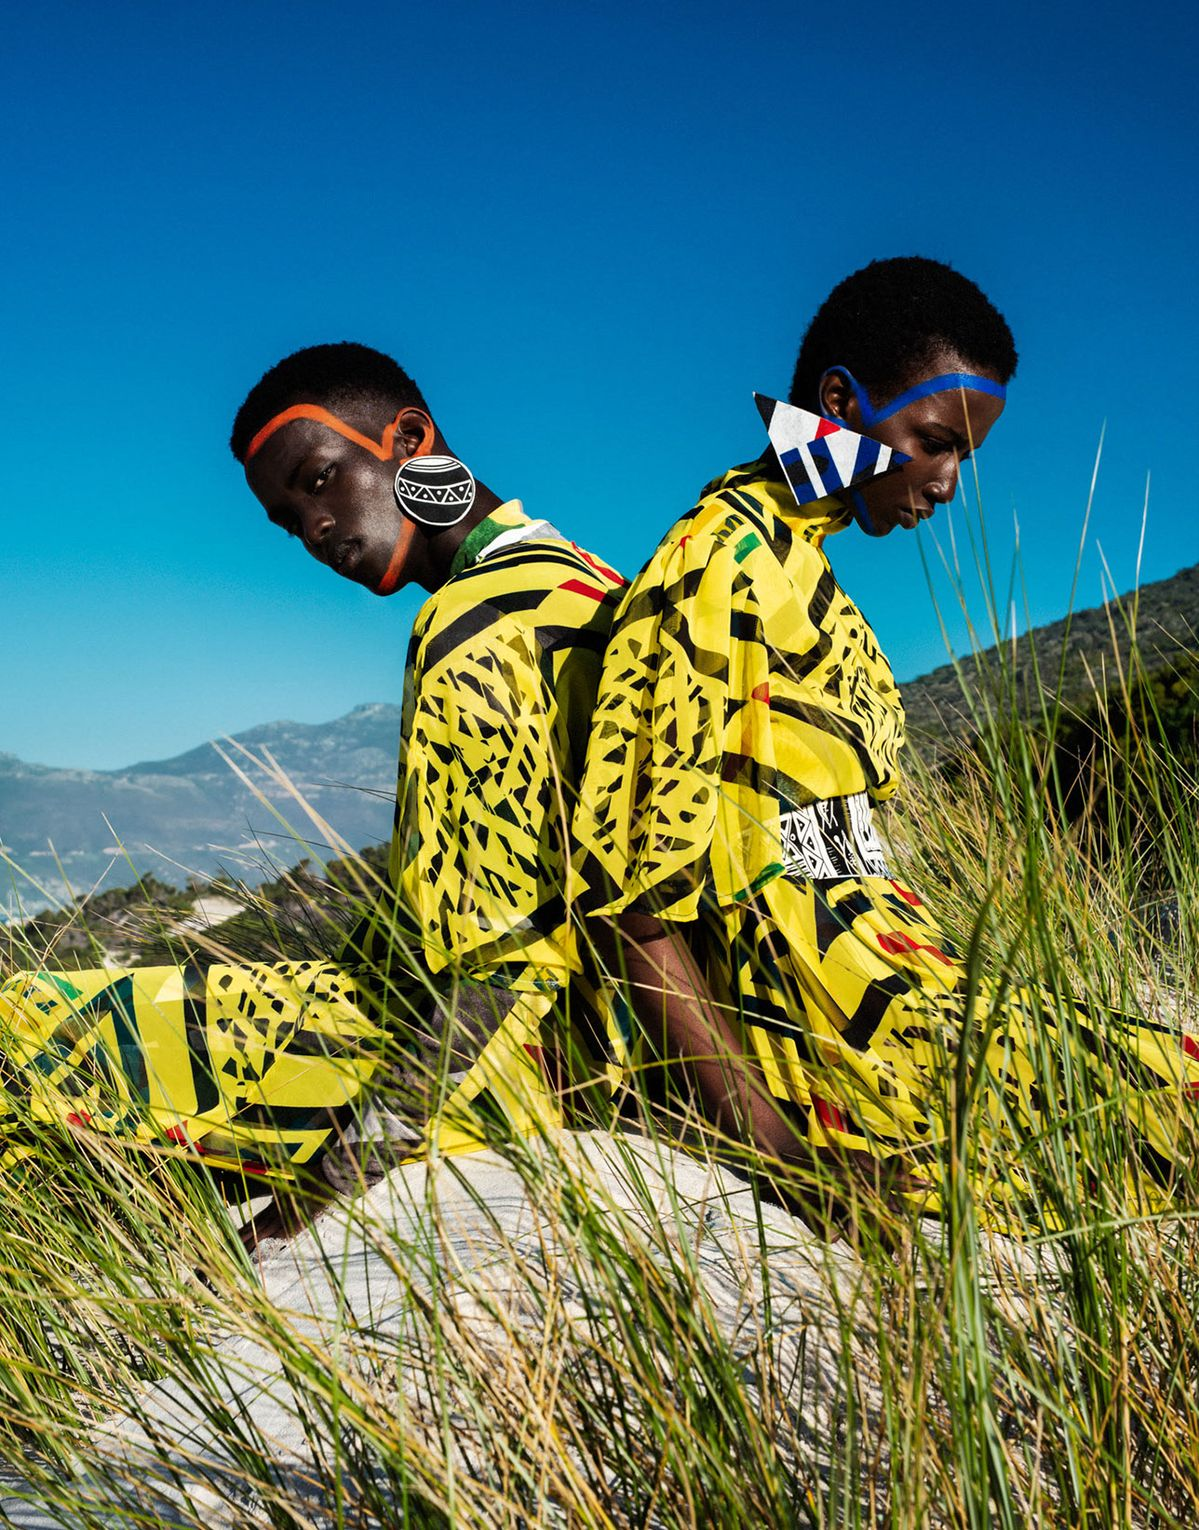 Desert fashion photography by Elena Iv-skaya for Africa is NOW Magazine.